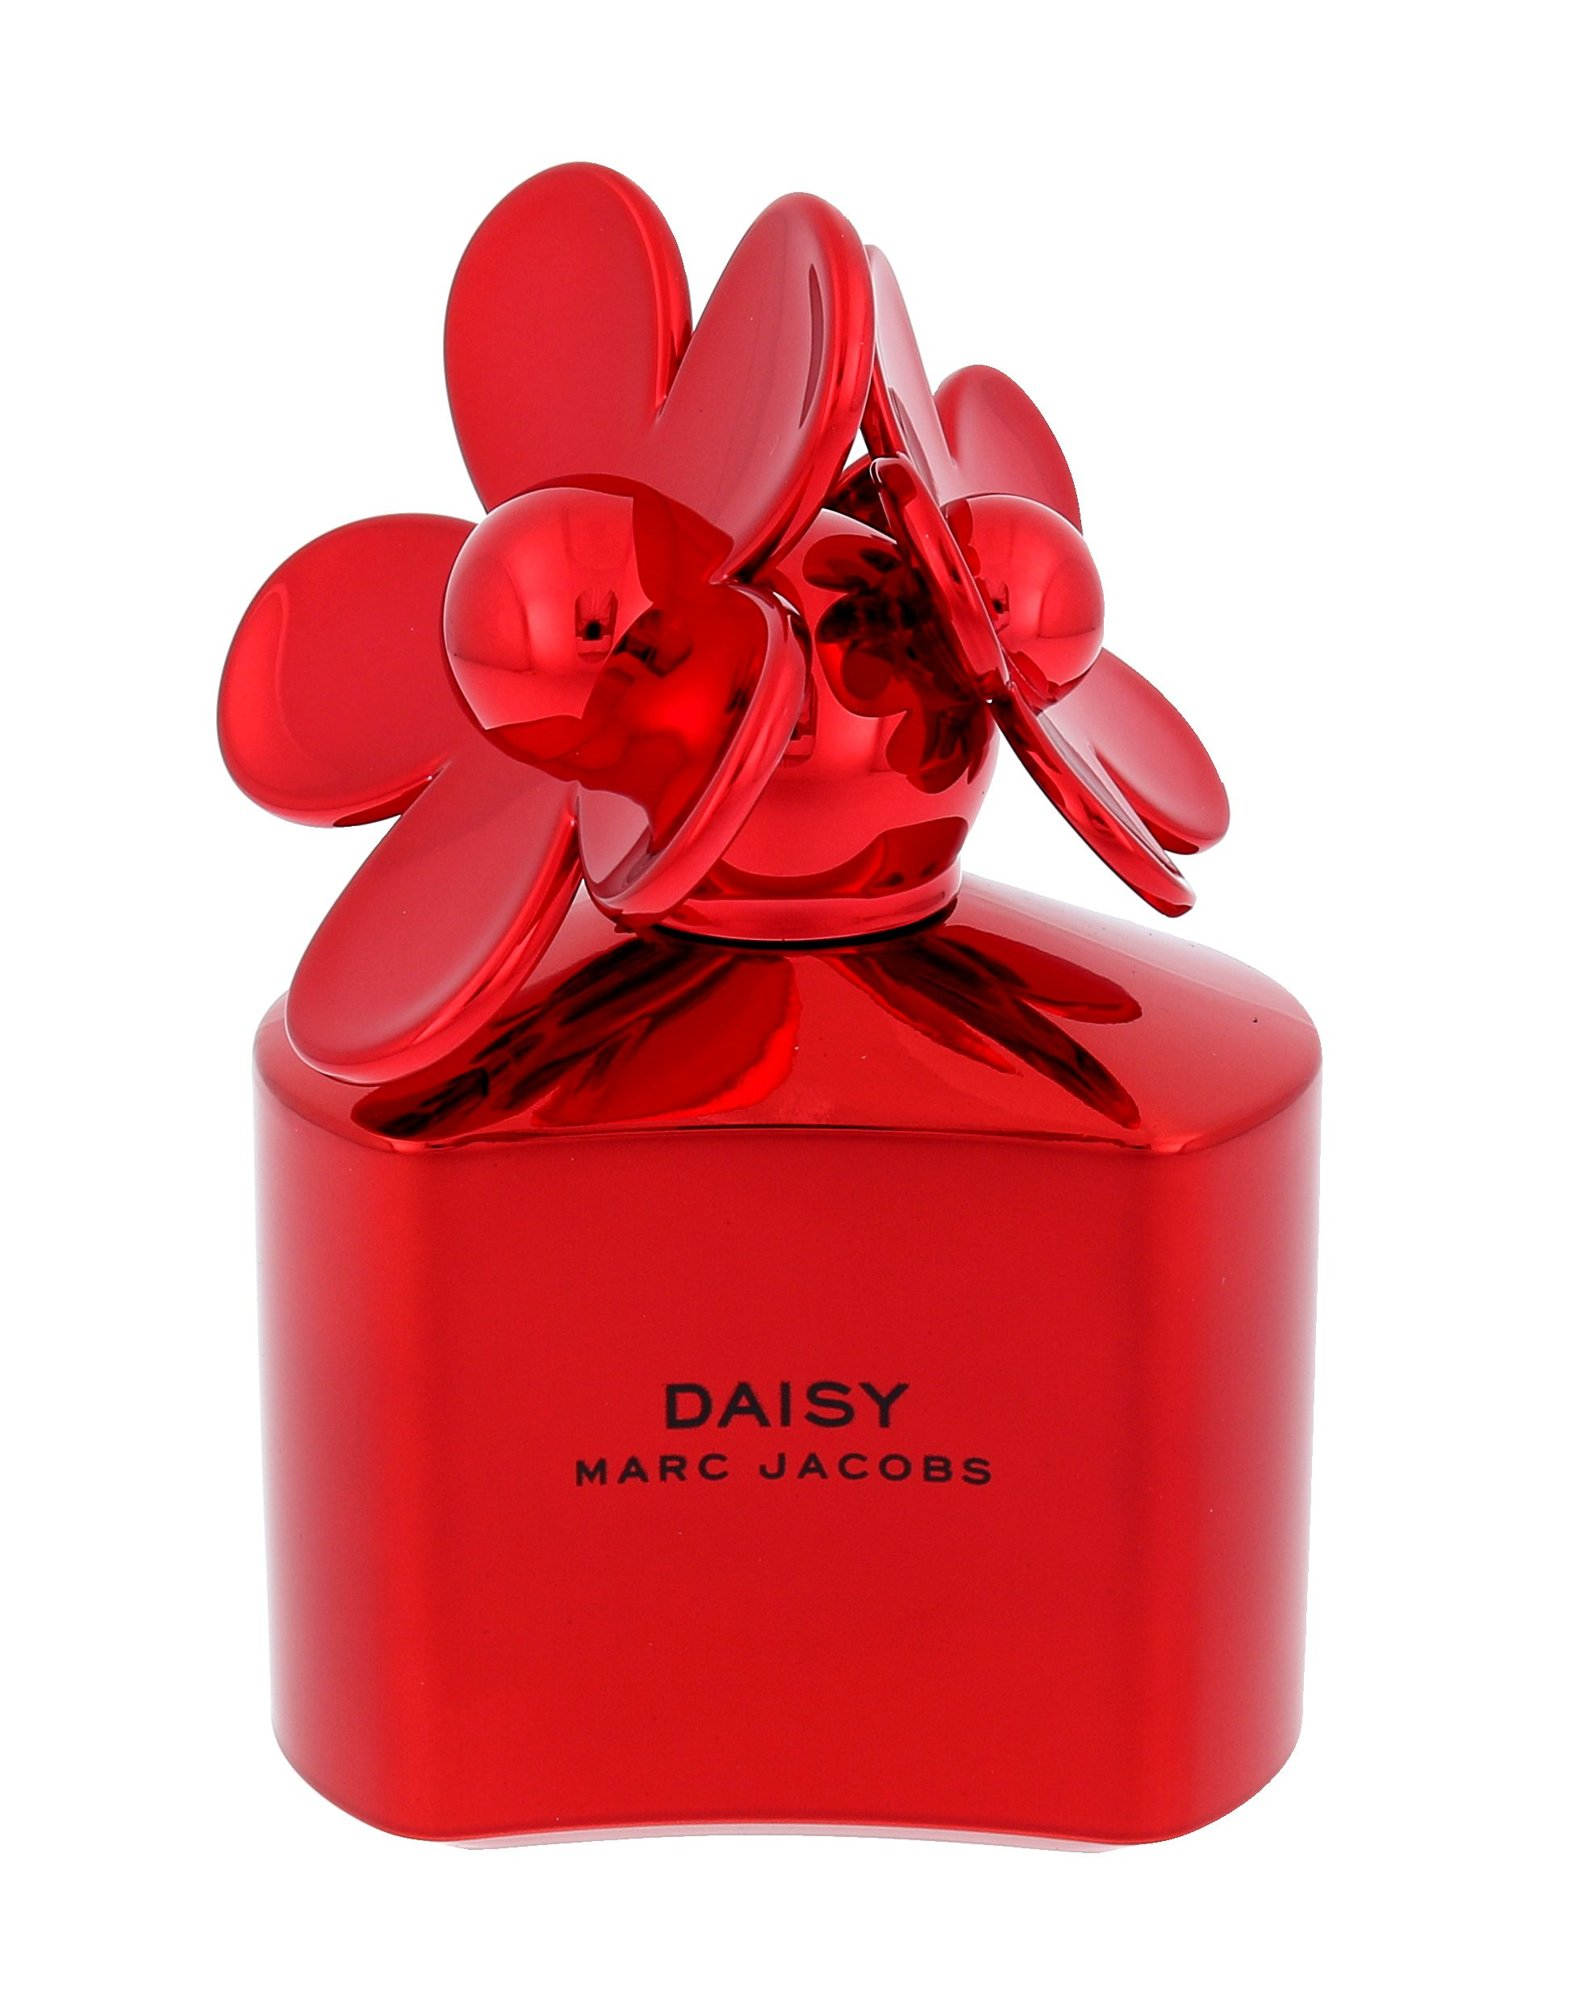 Marc Jacobs Daisy Shine Red Edition